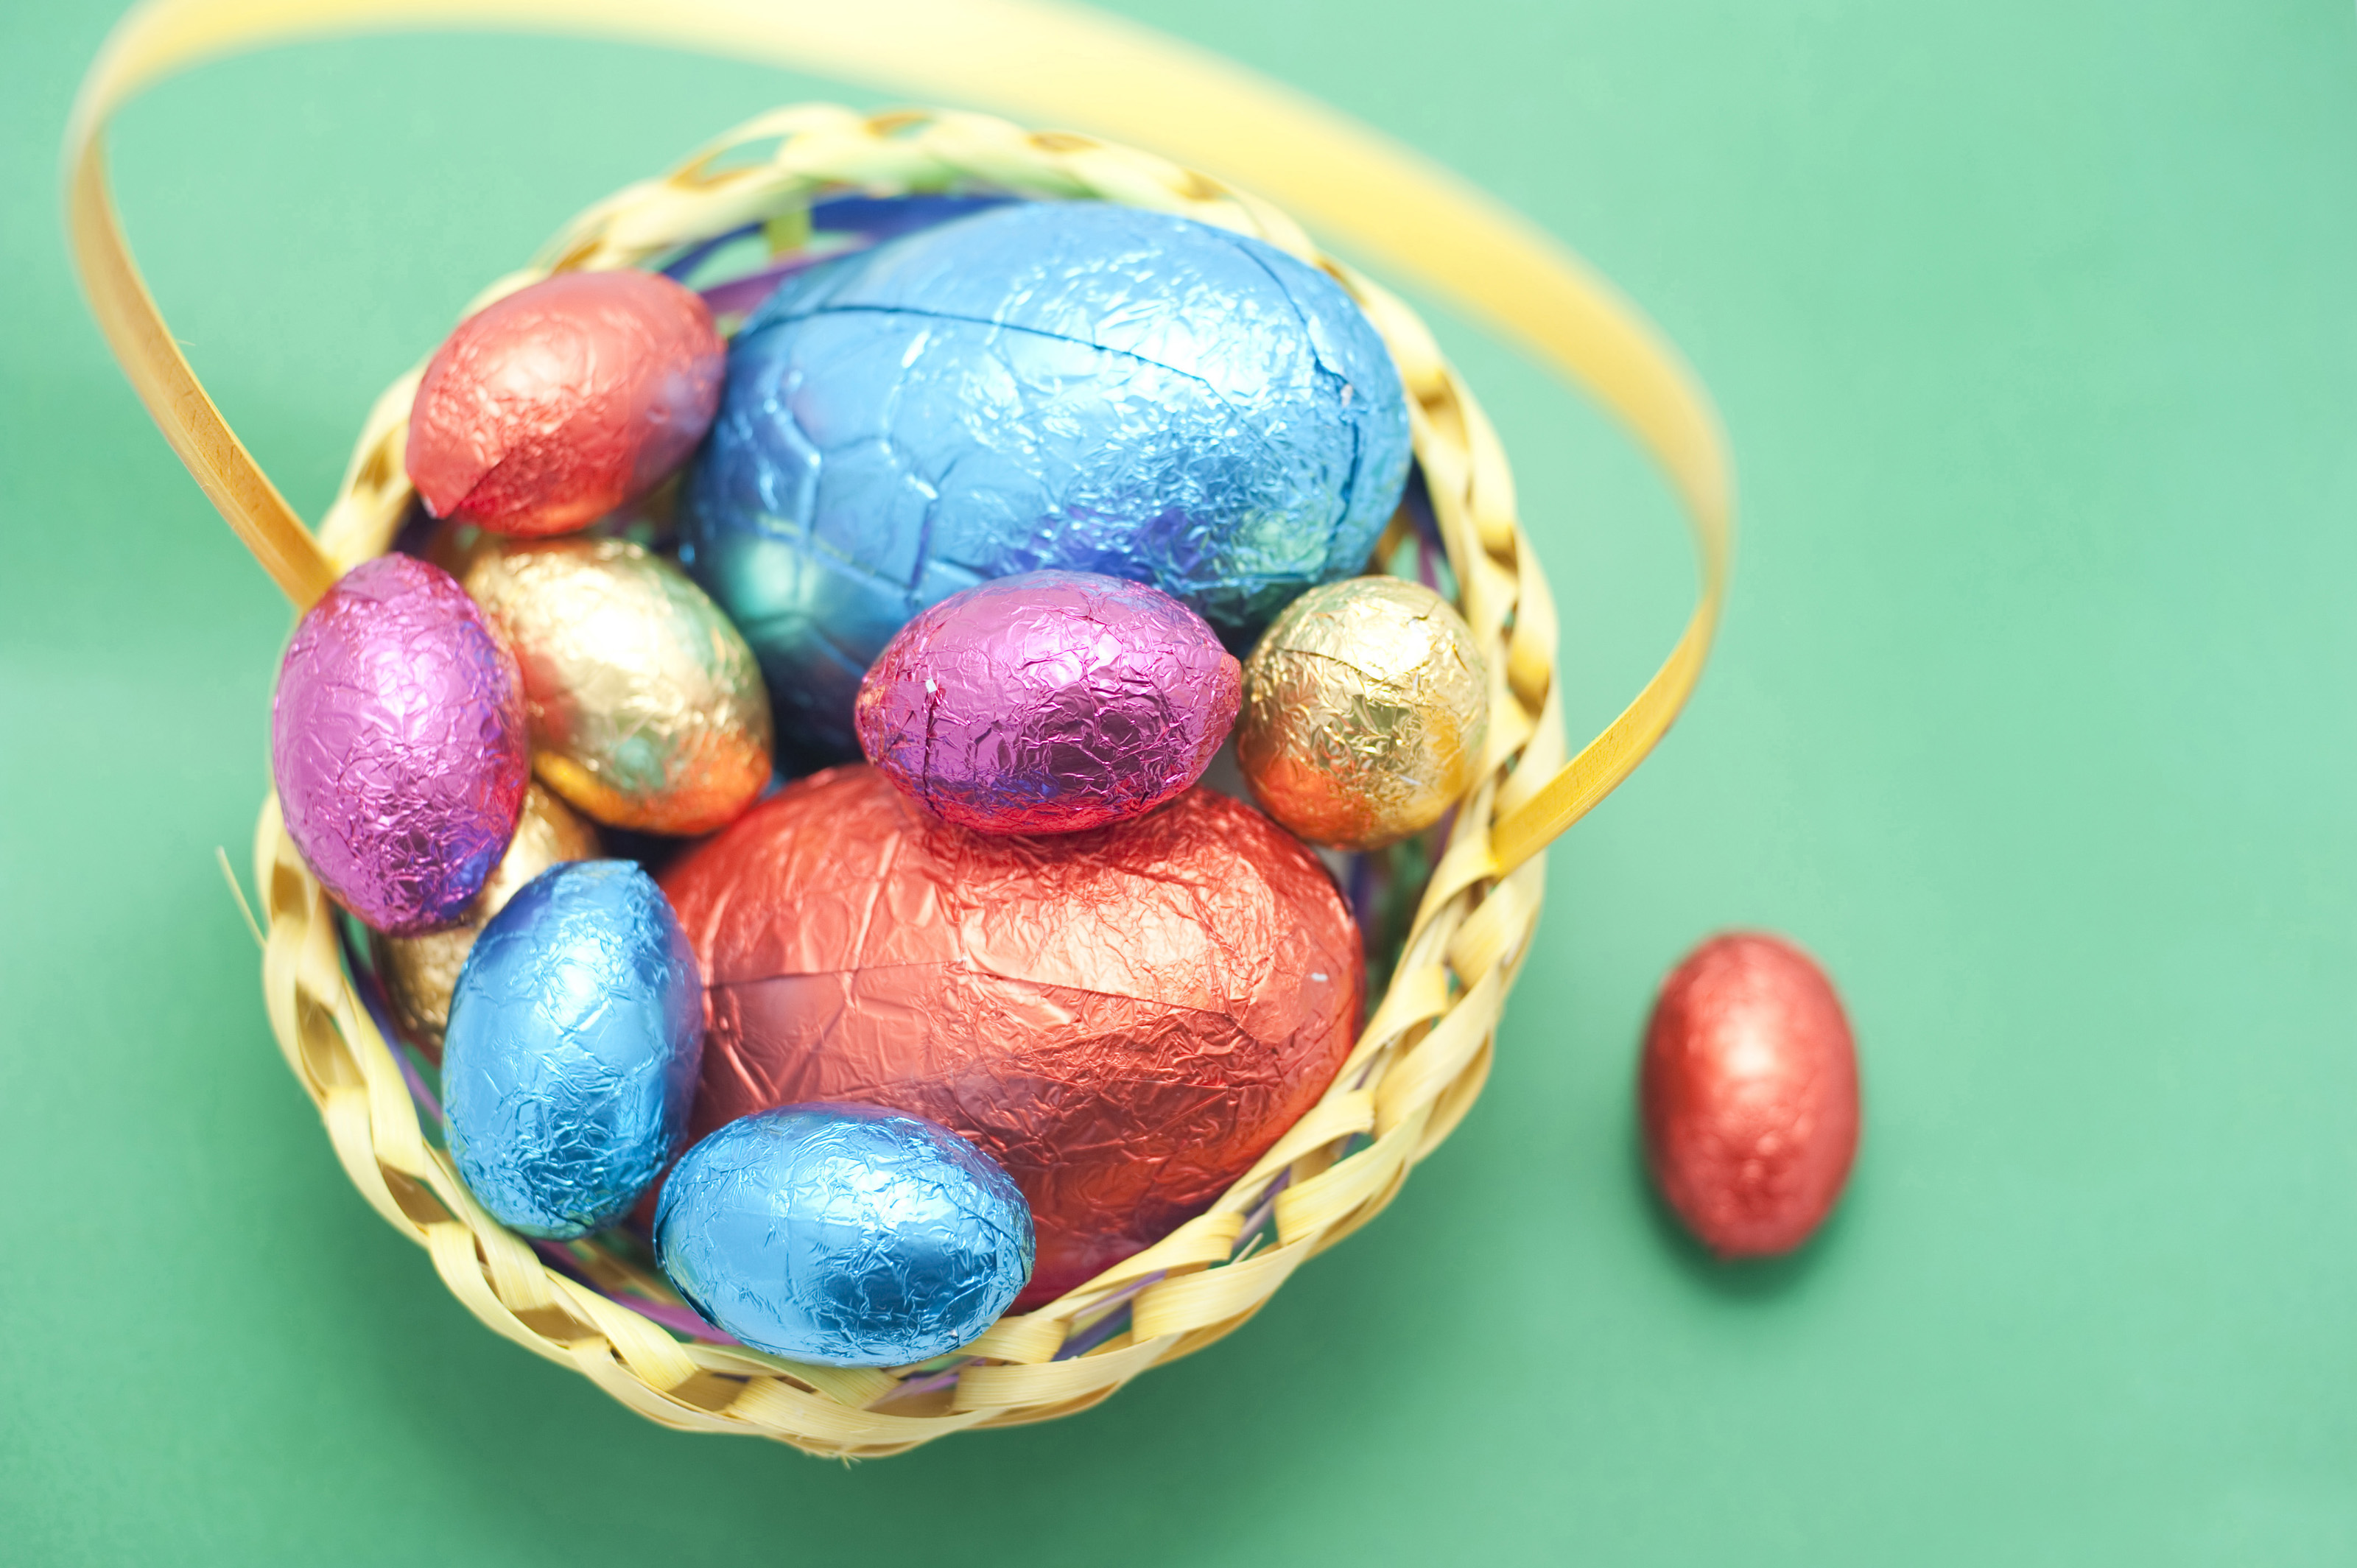 Free stock photo 7885 collected easter eggs in a basket freeimageslive overhead view of chocolate easter eggs in colourful foil wrappings in a basket on a green negle Choice Image